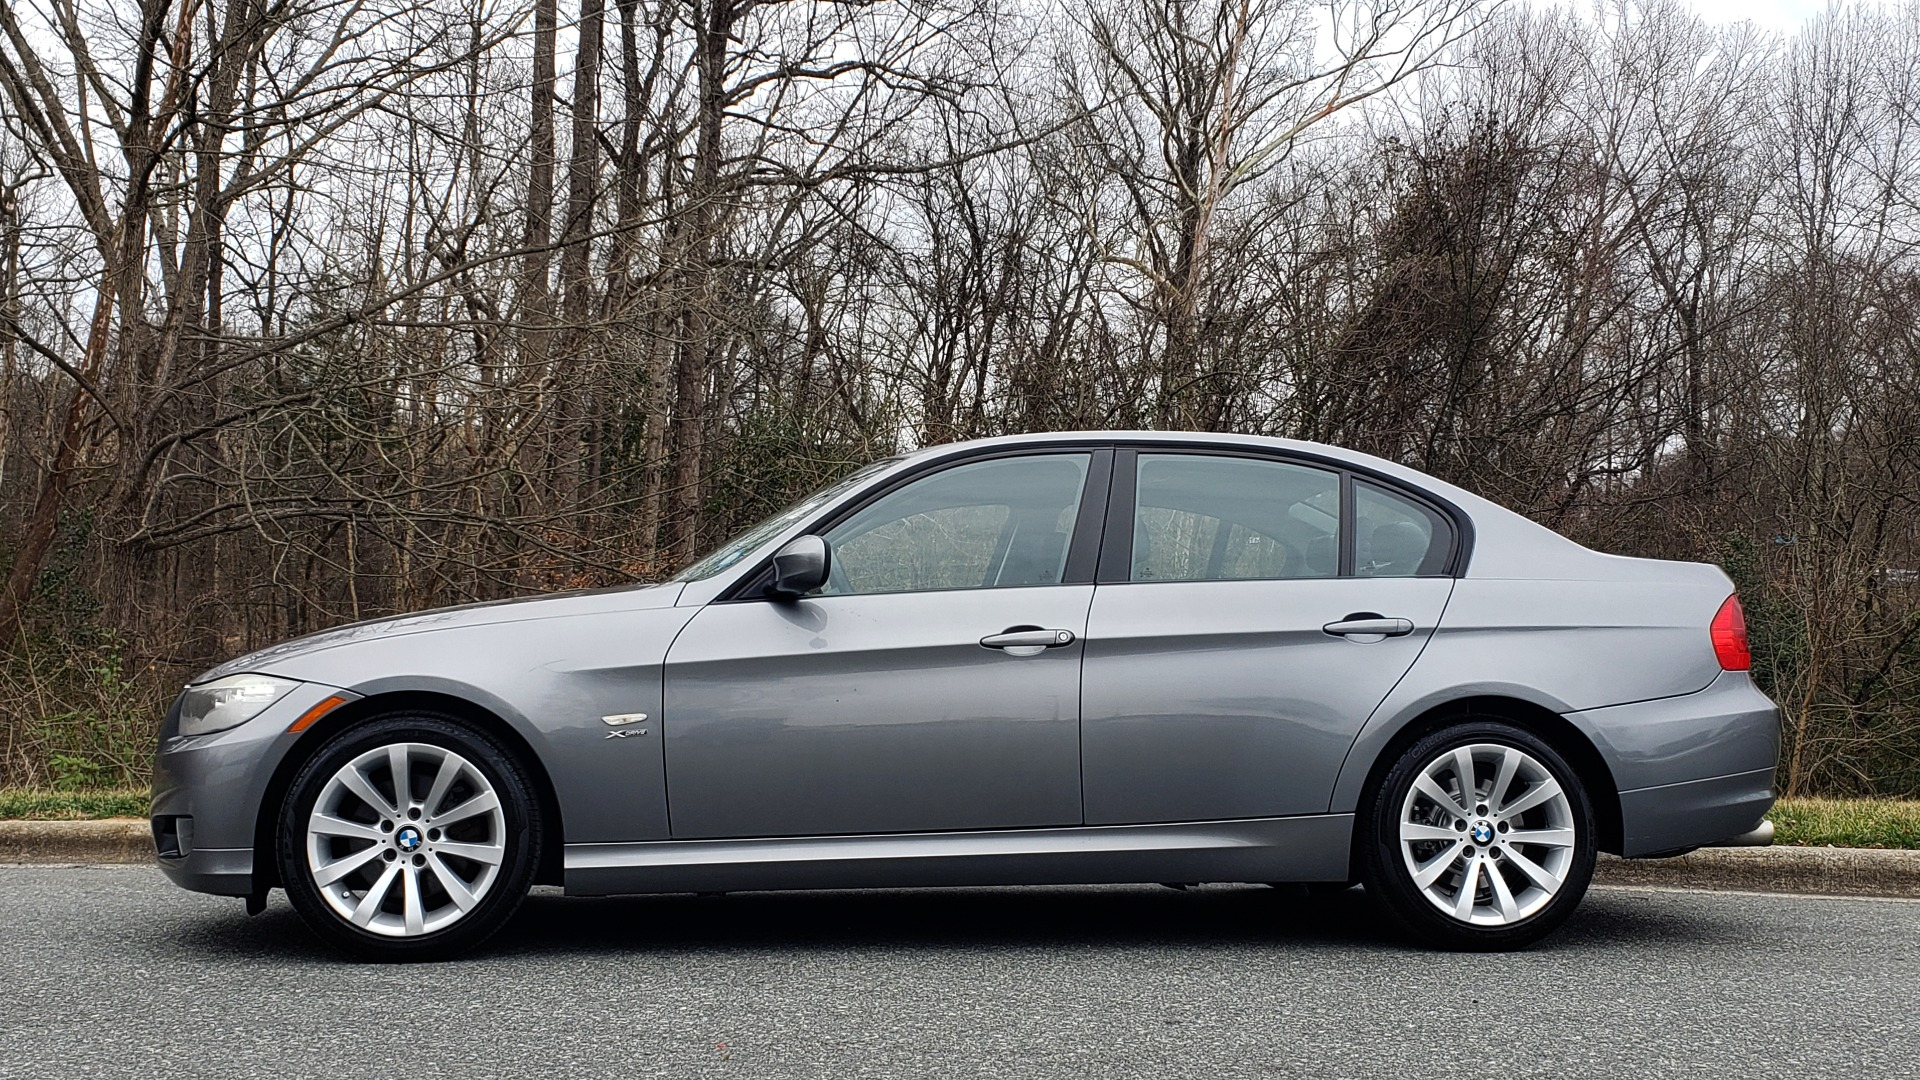 Used 2011 BMW 3 SERIES 328IXDRIVE PREMIUM / NAV / SUNROOF / HEATED SEATS for sale Sold at Formula Imports in Charlotte NC 28227 2